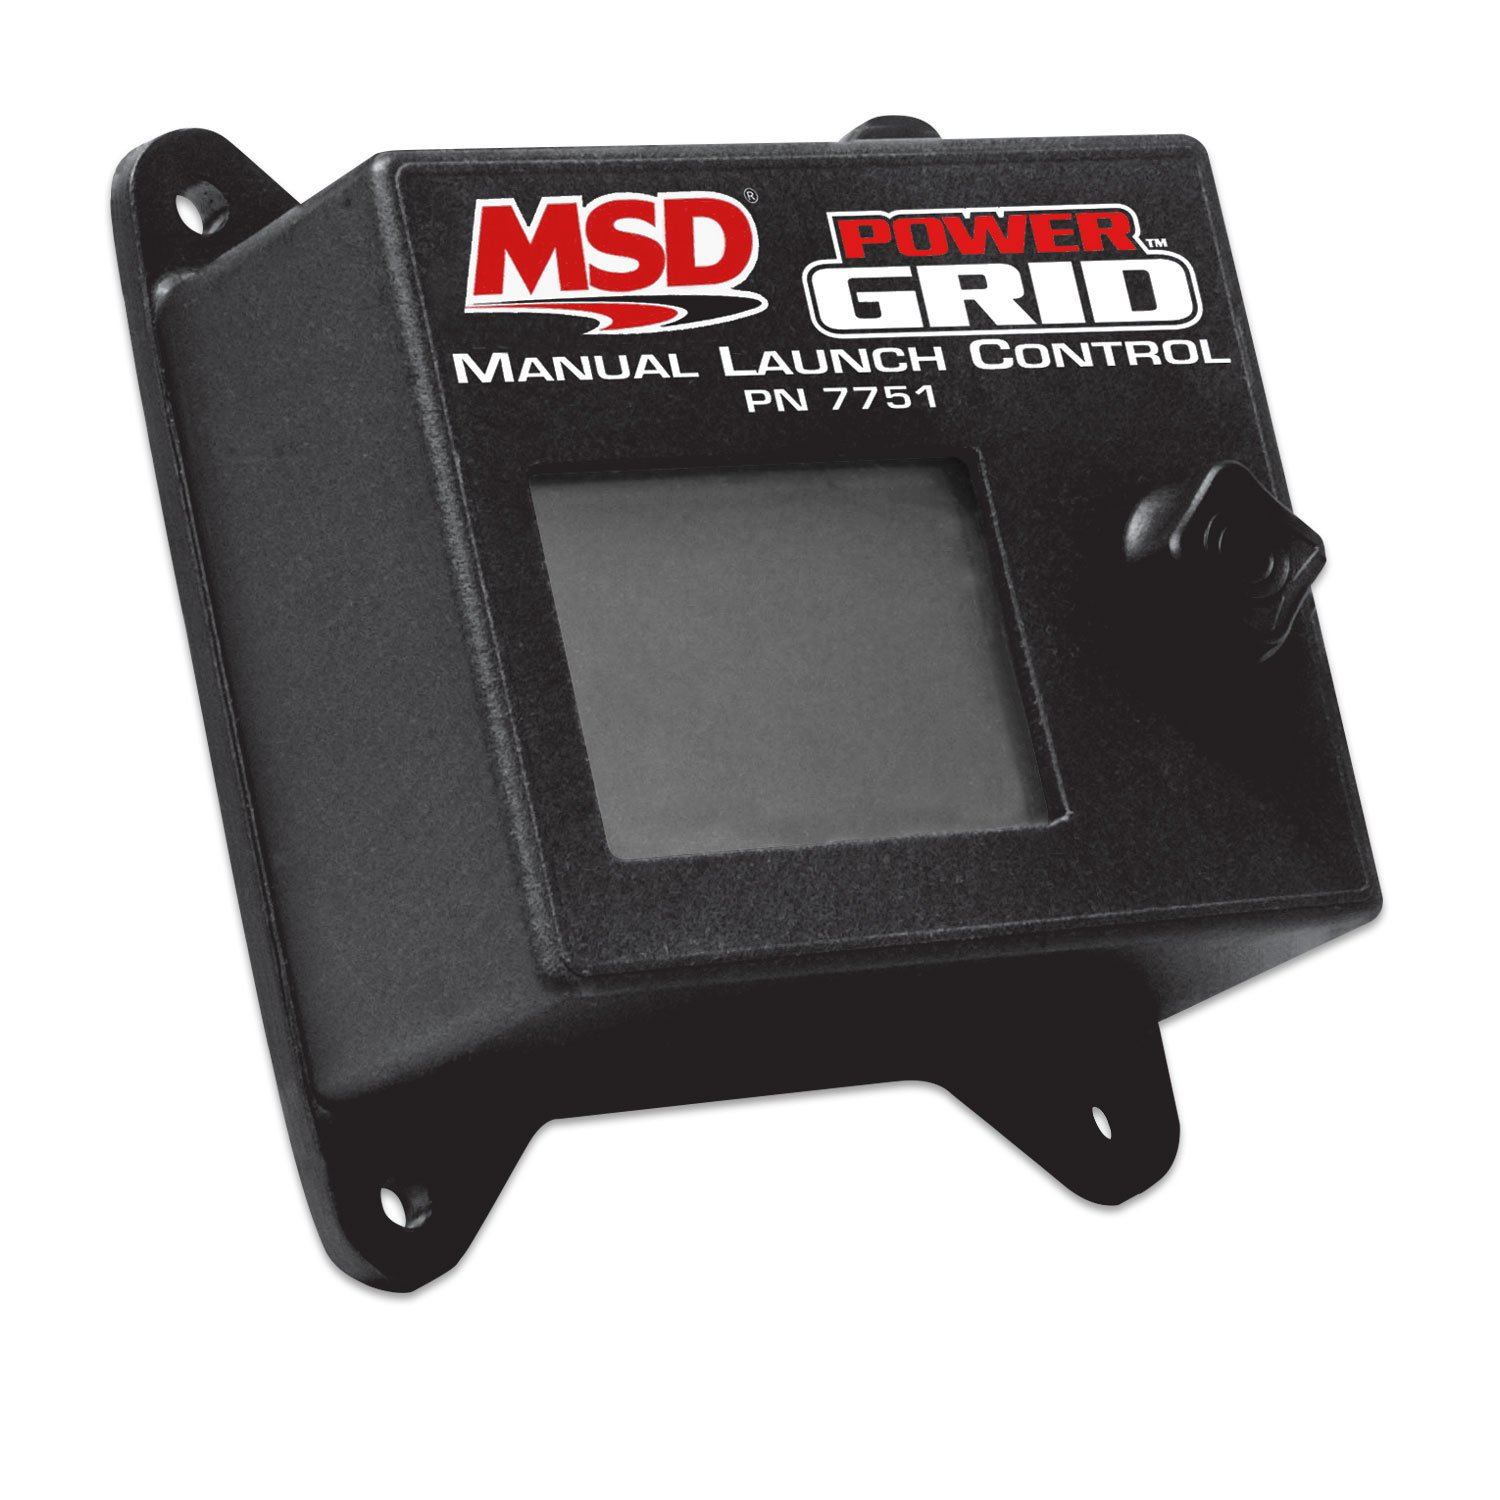 power grid modules and accessories msd performance products manual launch control module for power grid system